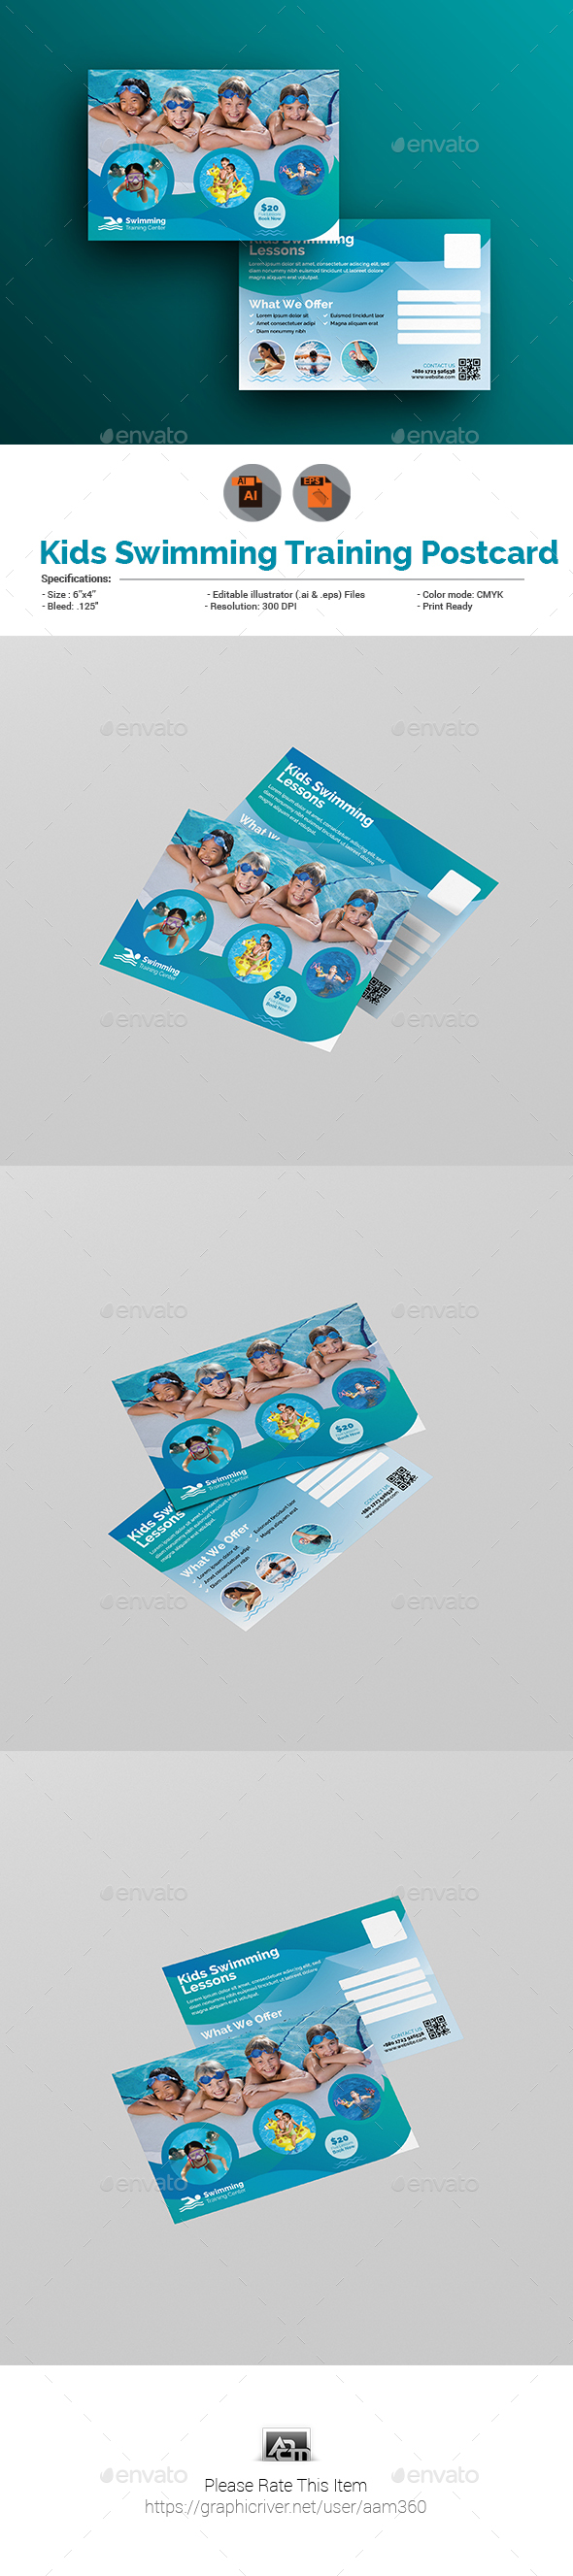 Kids Swimming Training Postcard - Cards & Invites Print Templates